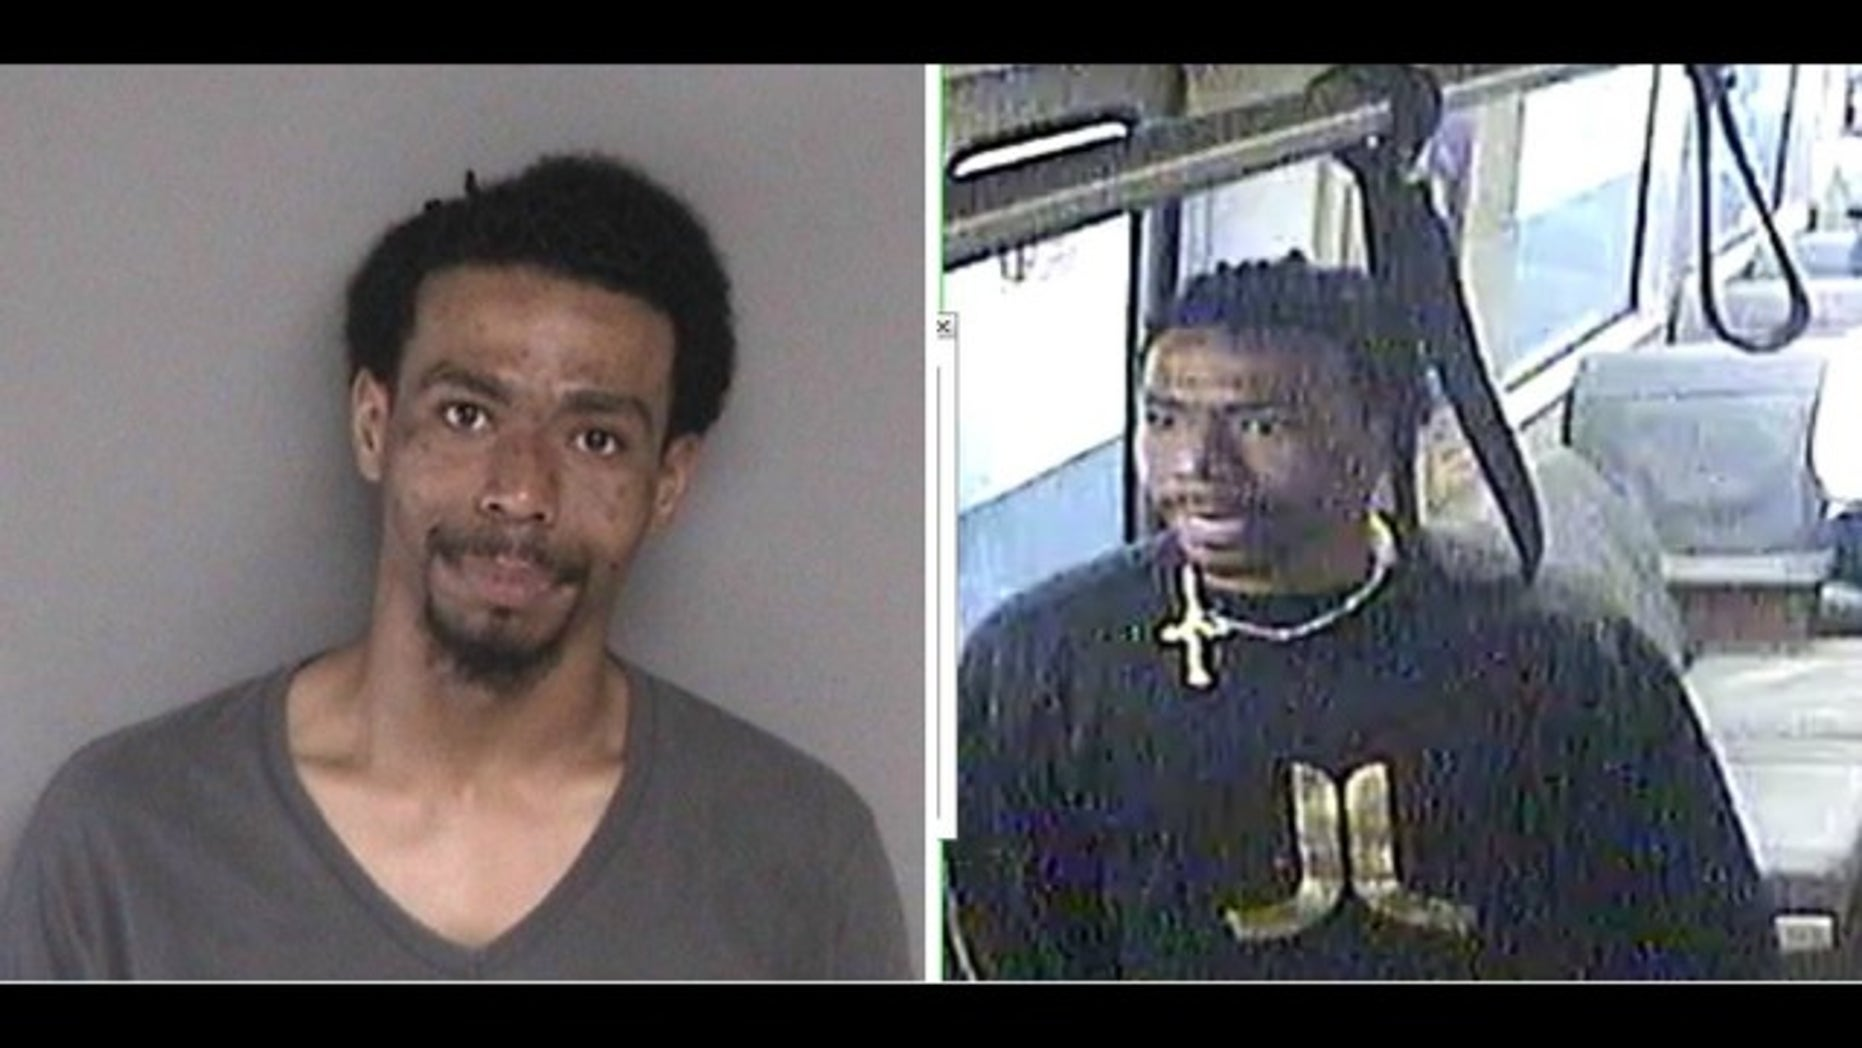 Police say Solomon Espinosa, 27, is wanted in connection with the slashings of two men aboard a BART train Friday night.